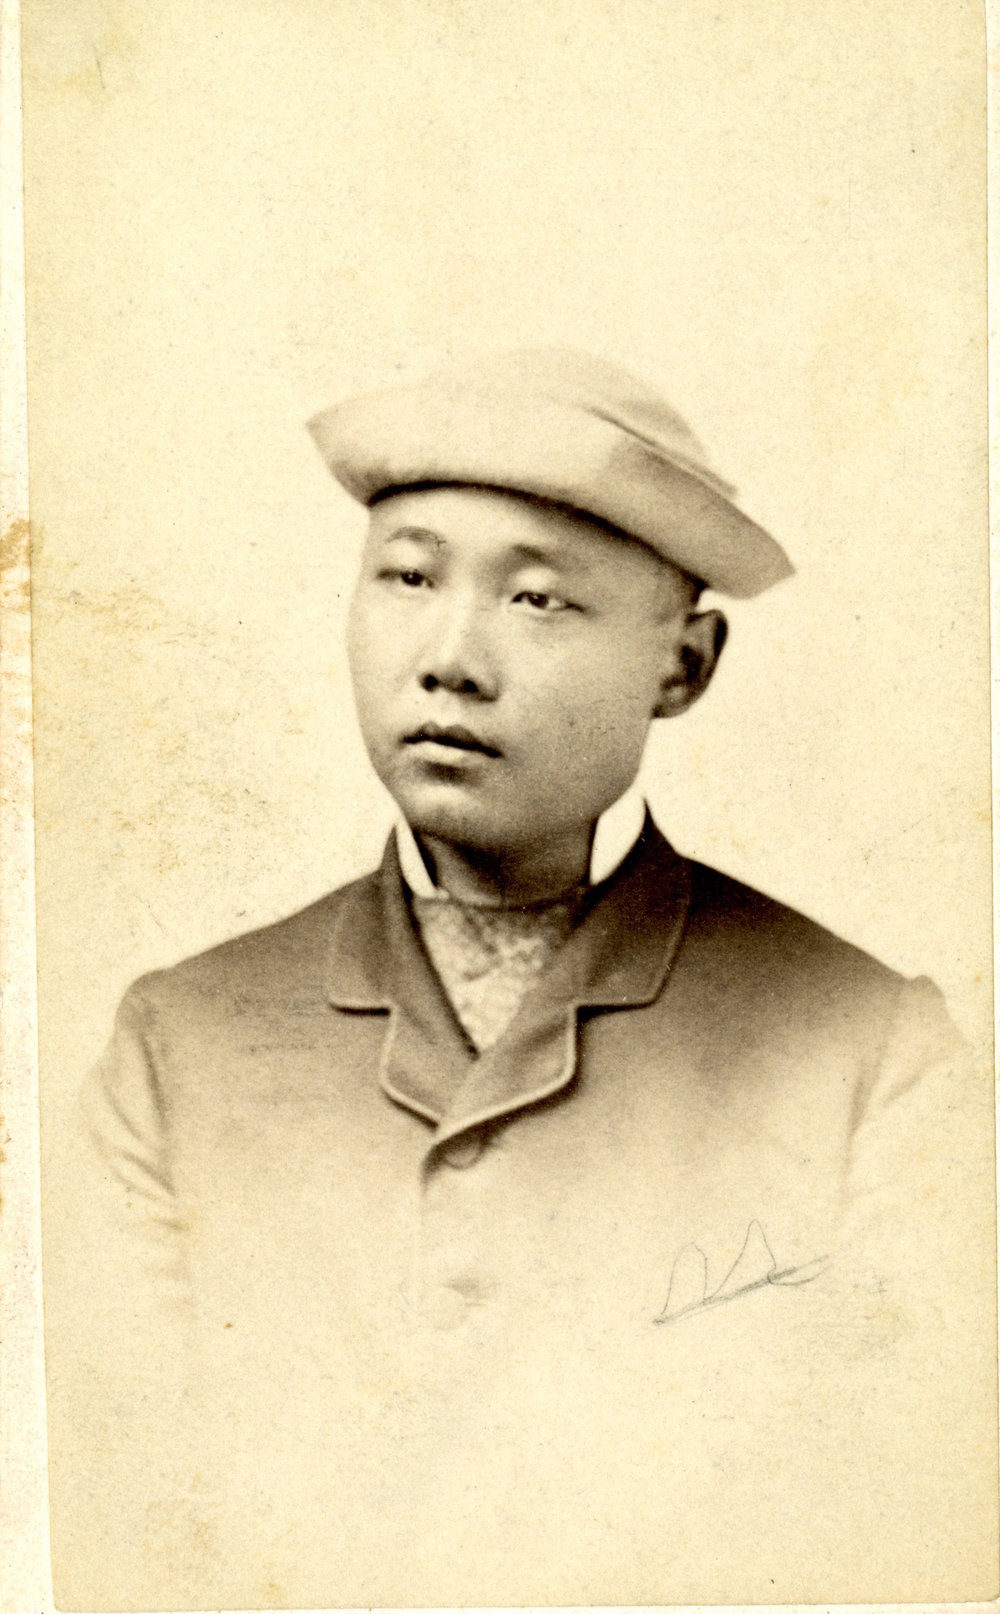 Kwong Wing Chung ca. 1873, 2-2-36, Thomas E. LaFargue Papers, 1873-1946, courtesy Manuscripts, Archives, and Special Collections (MASC), Washington State University Libraries.